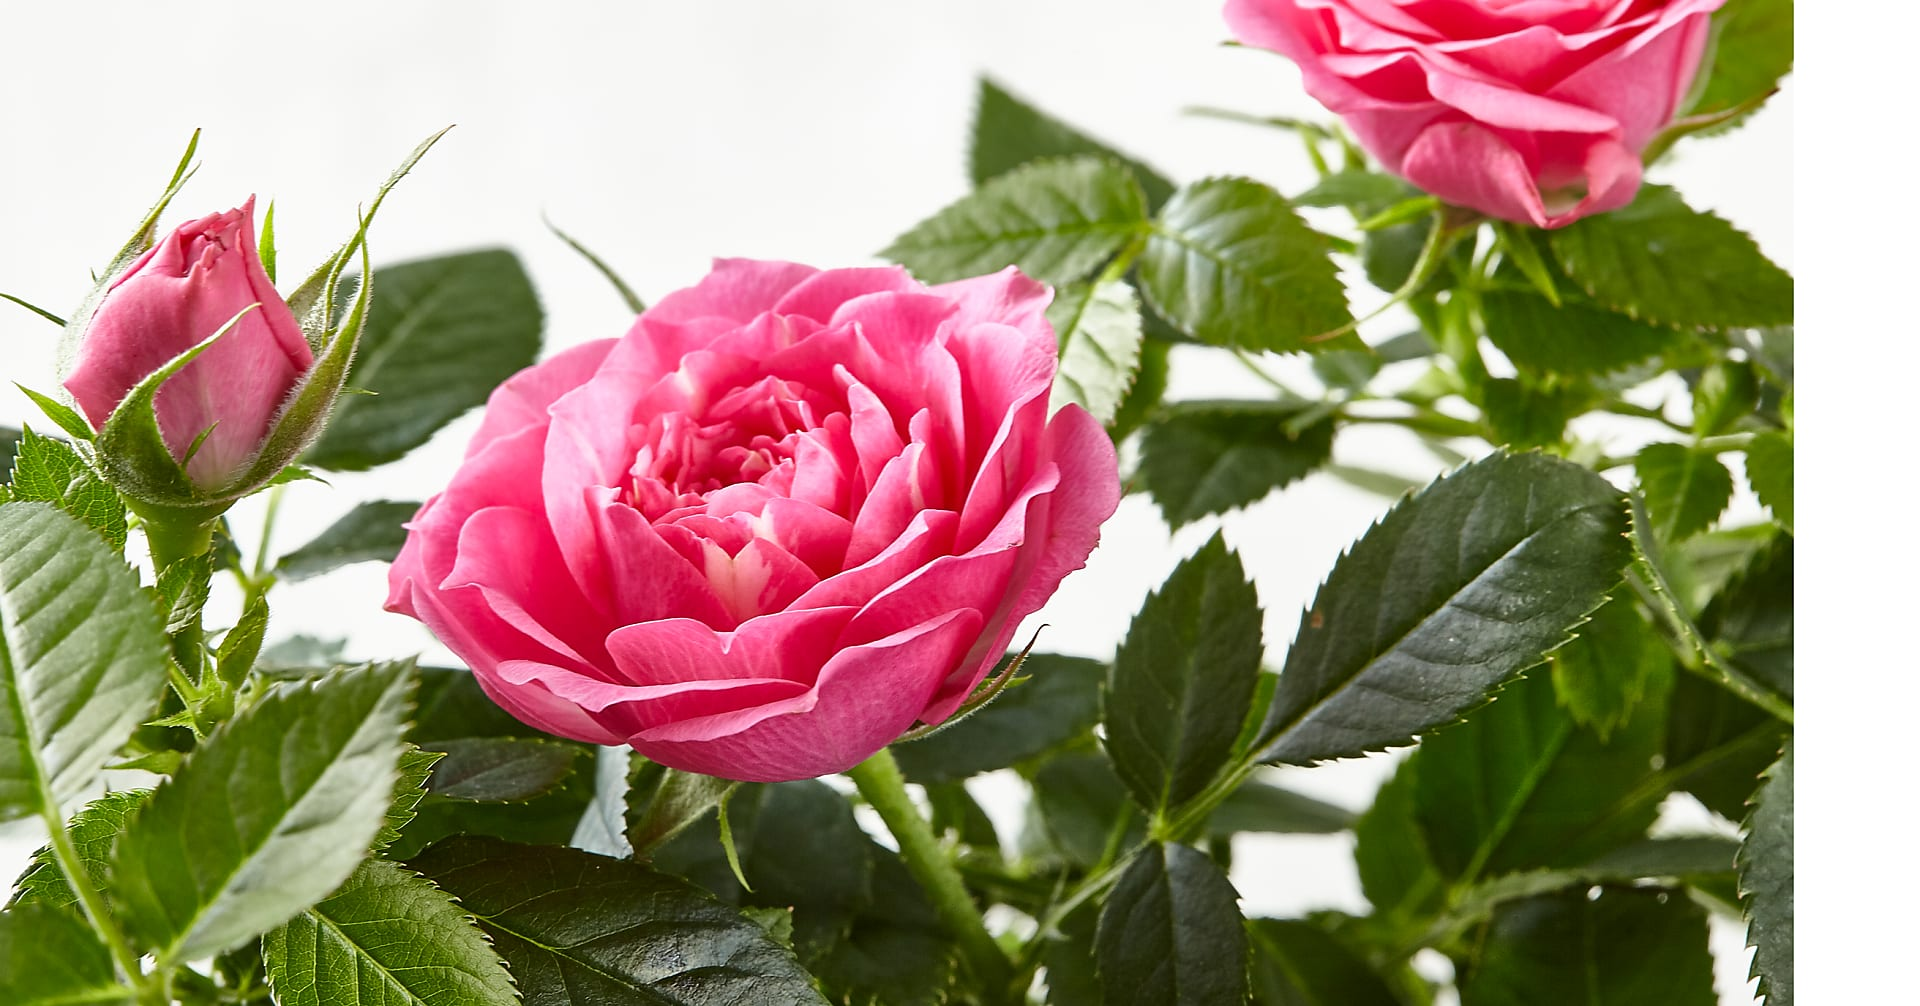 Young Love Pink Rose Plant - Image 2 Of 2